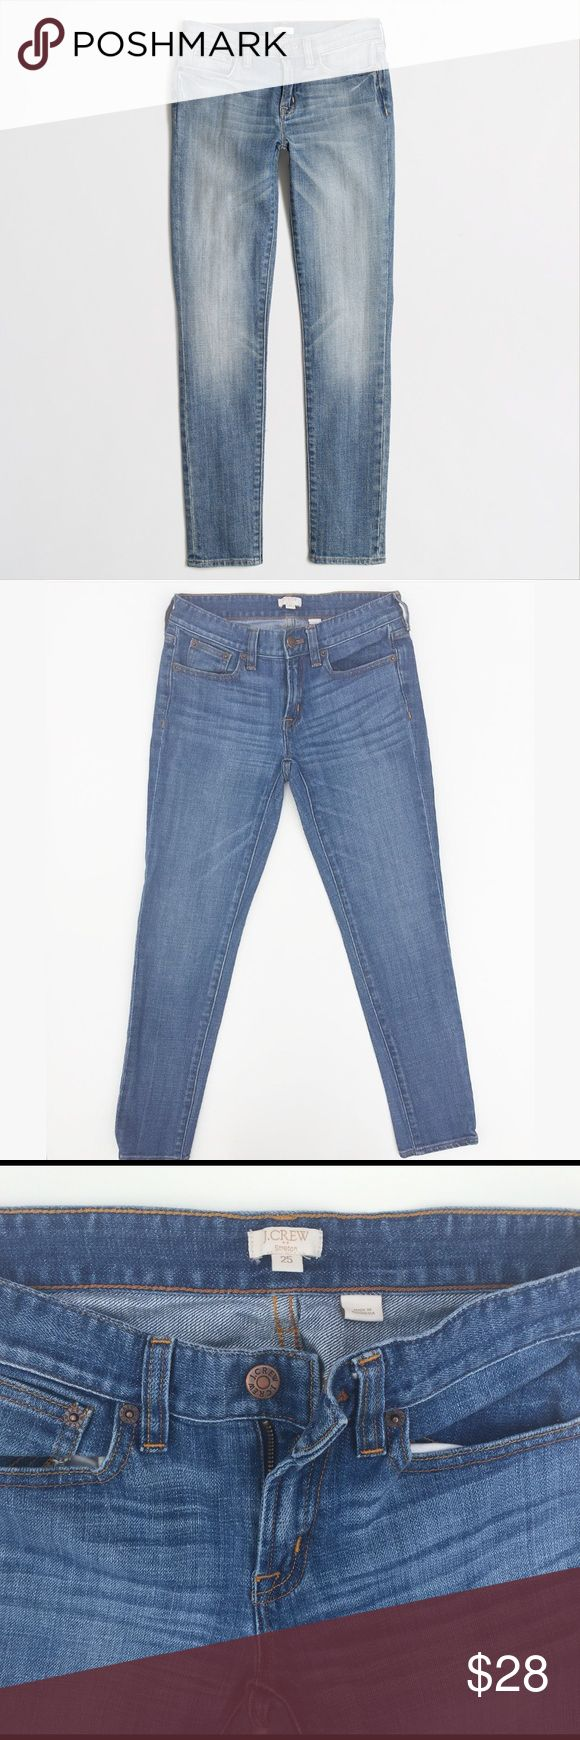 "J Crew Skinny Stretch Ankle Jean Size 25 J Crew factory skinny ankle jean.  Cotton with a hint of stretch. Sits lower on hip, with a superskinny, straight leg. 28"" inseam. Traditional 5-pocket styling. J. Crew Jeans Ankle & Cropped"